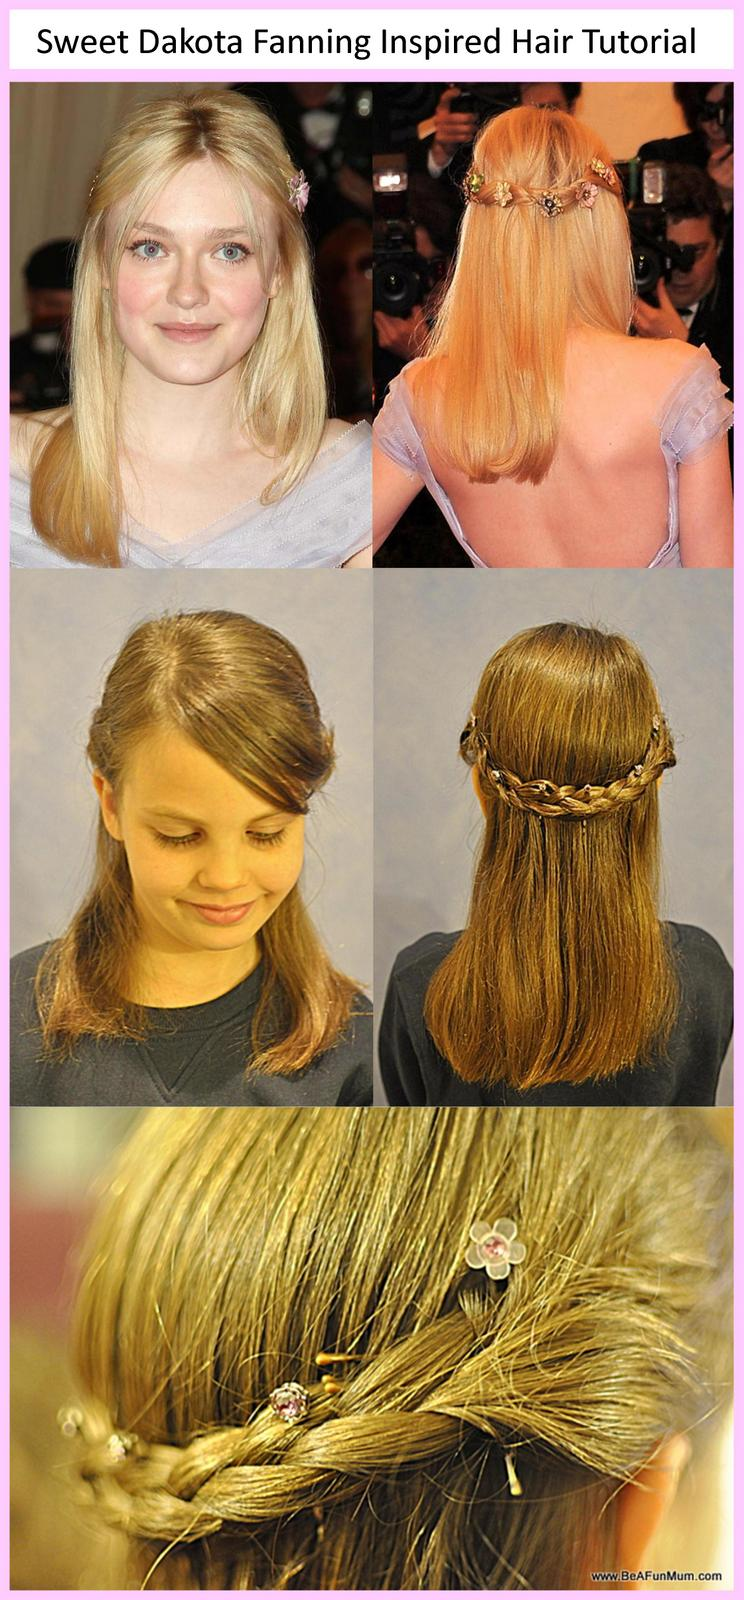 dakota fanning inspired hair tutorial from met ball 2012